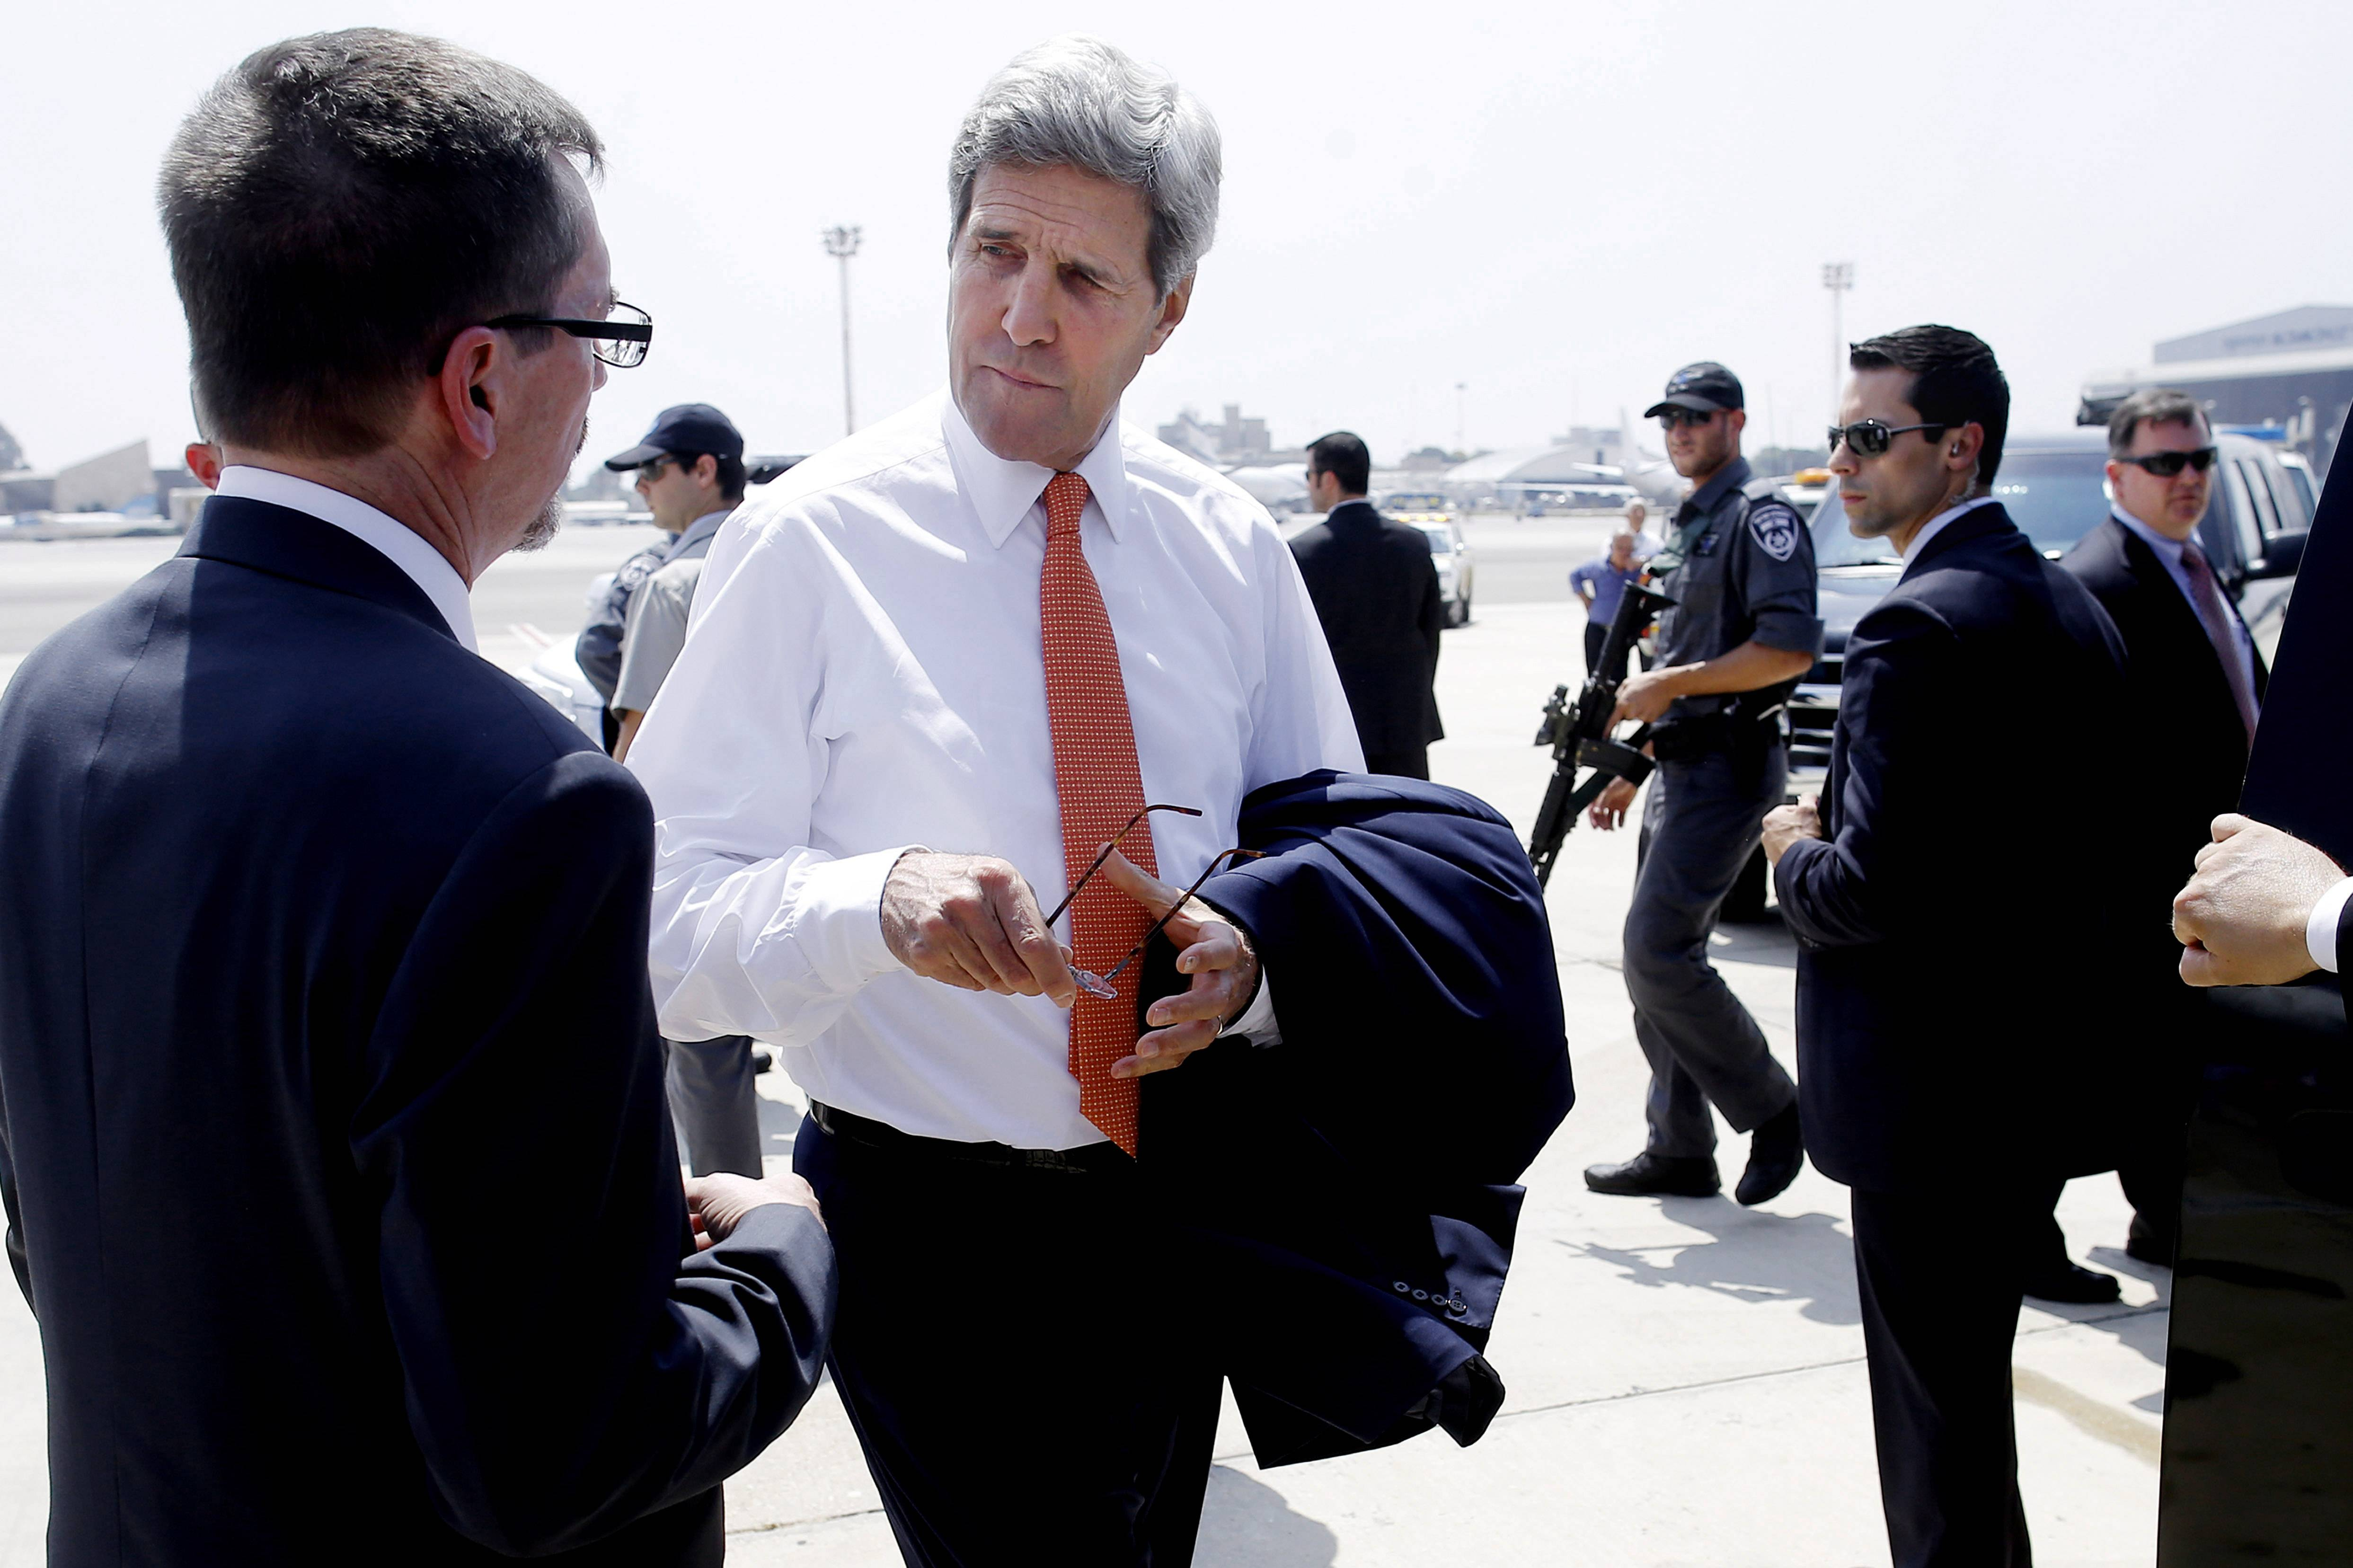 Associated PressU.S. Secretary of State John Kerry talks with U.S. Embassy Deputy Chief of Mission Bill Grant after his arrival in Tel Aviv, Israel, Wednesday.